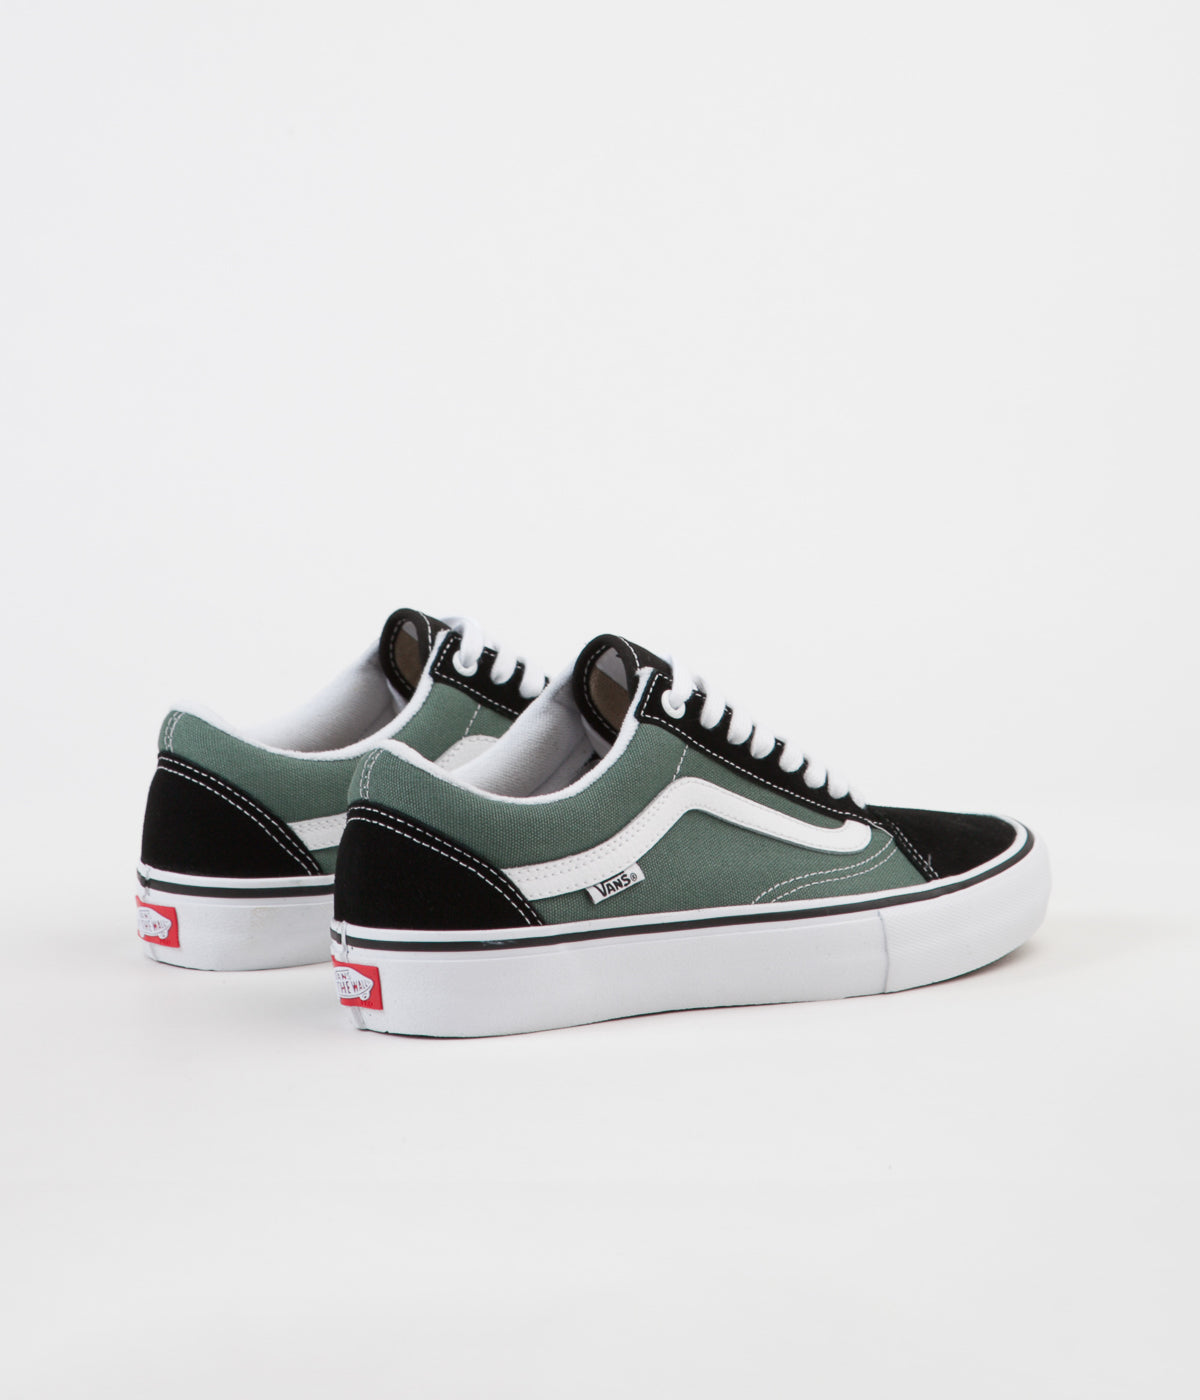 vans old skool duck